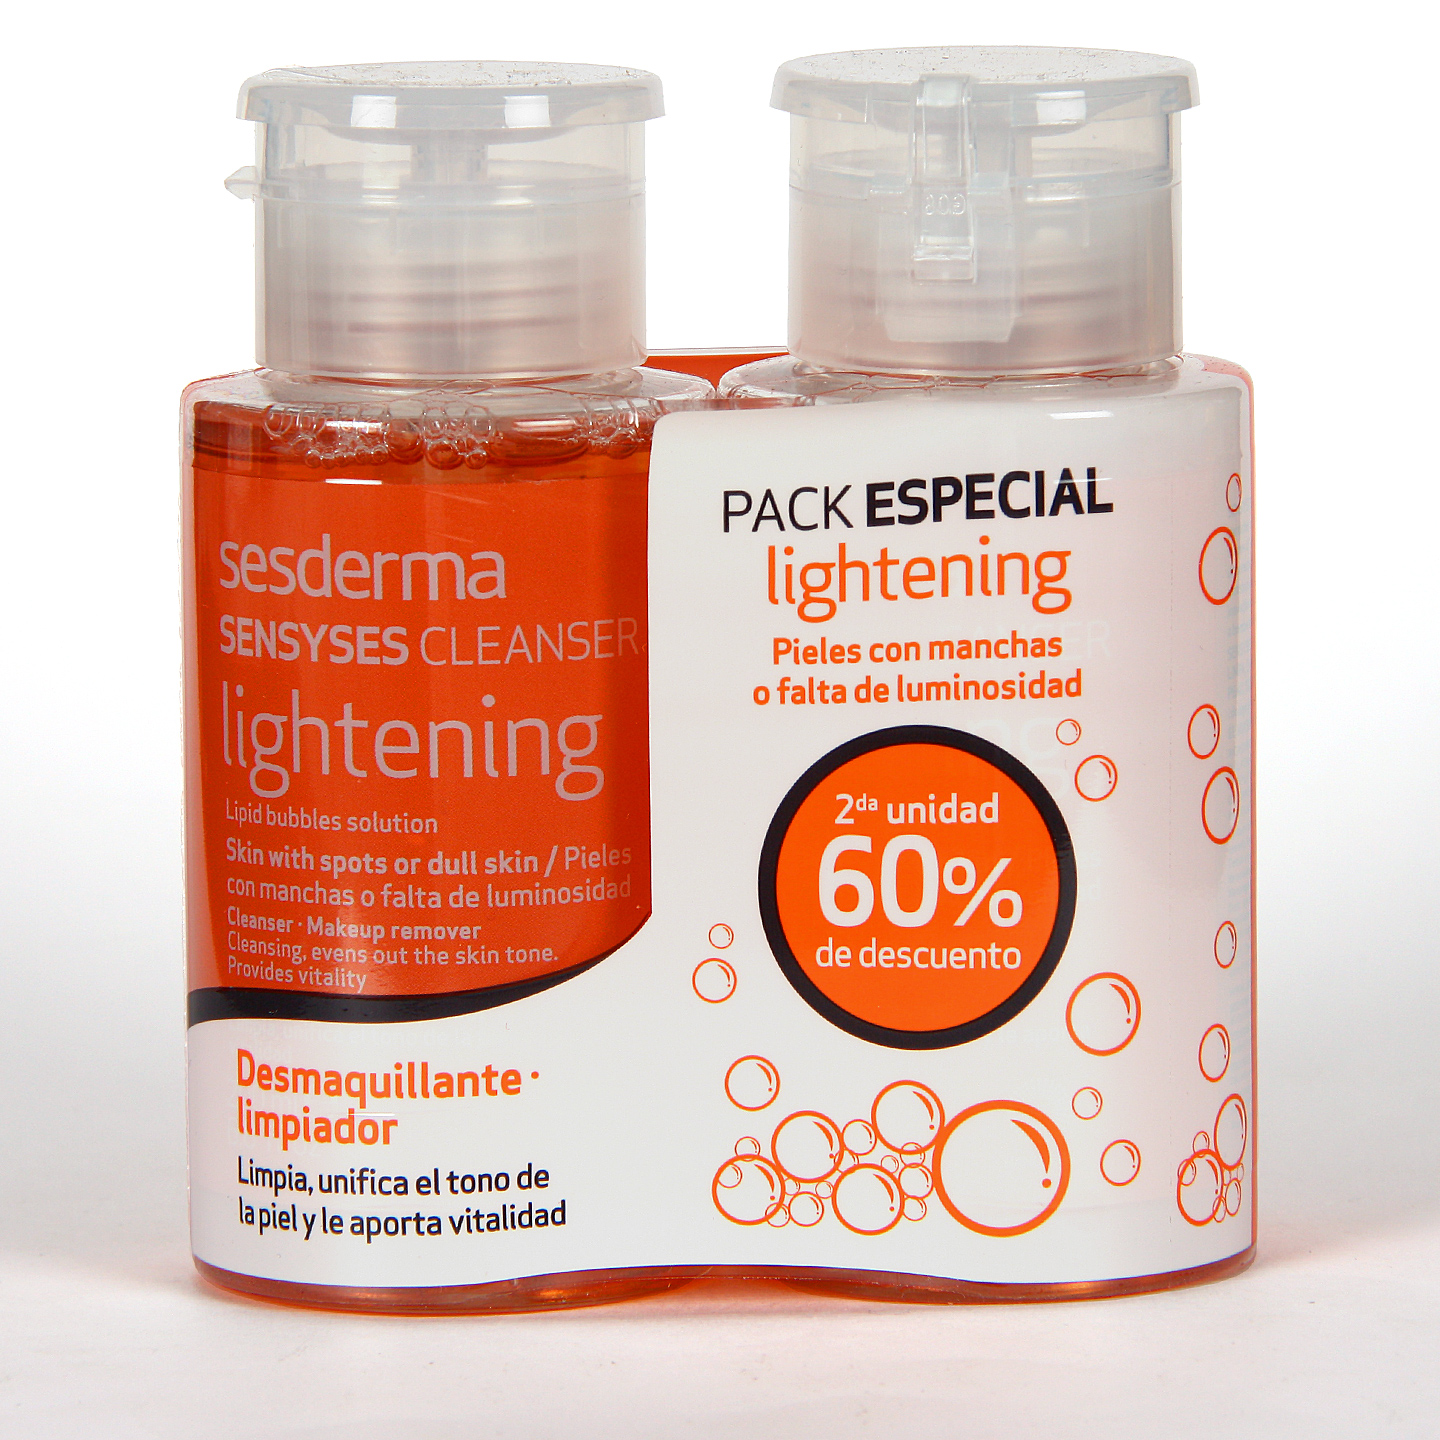 Sesderma Sensyses Cleanser Lightening Pack al 60% de descuento